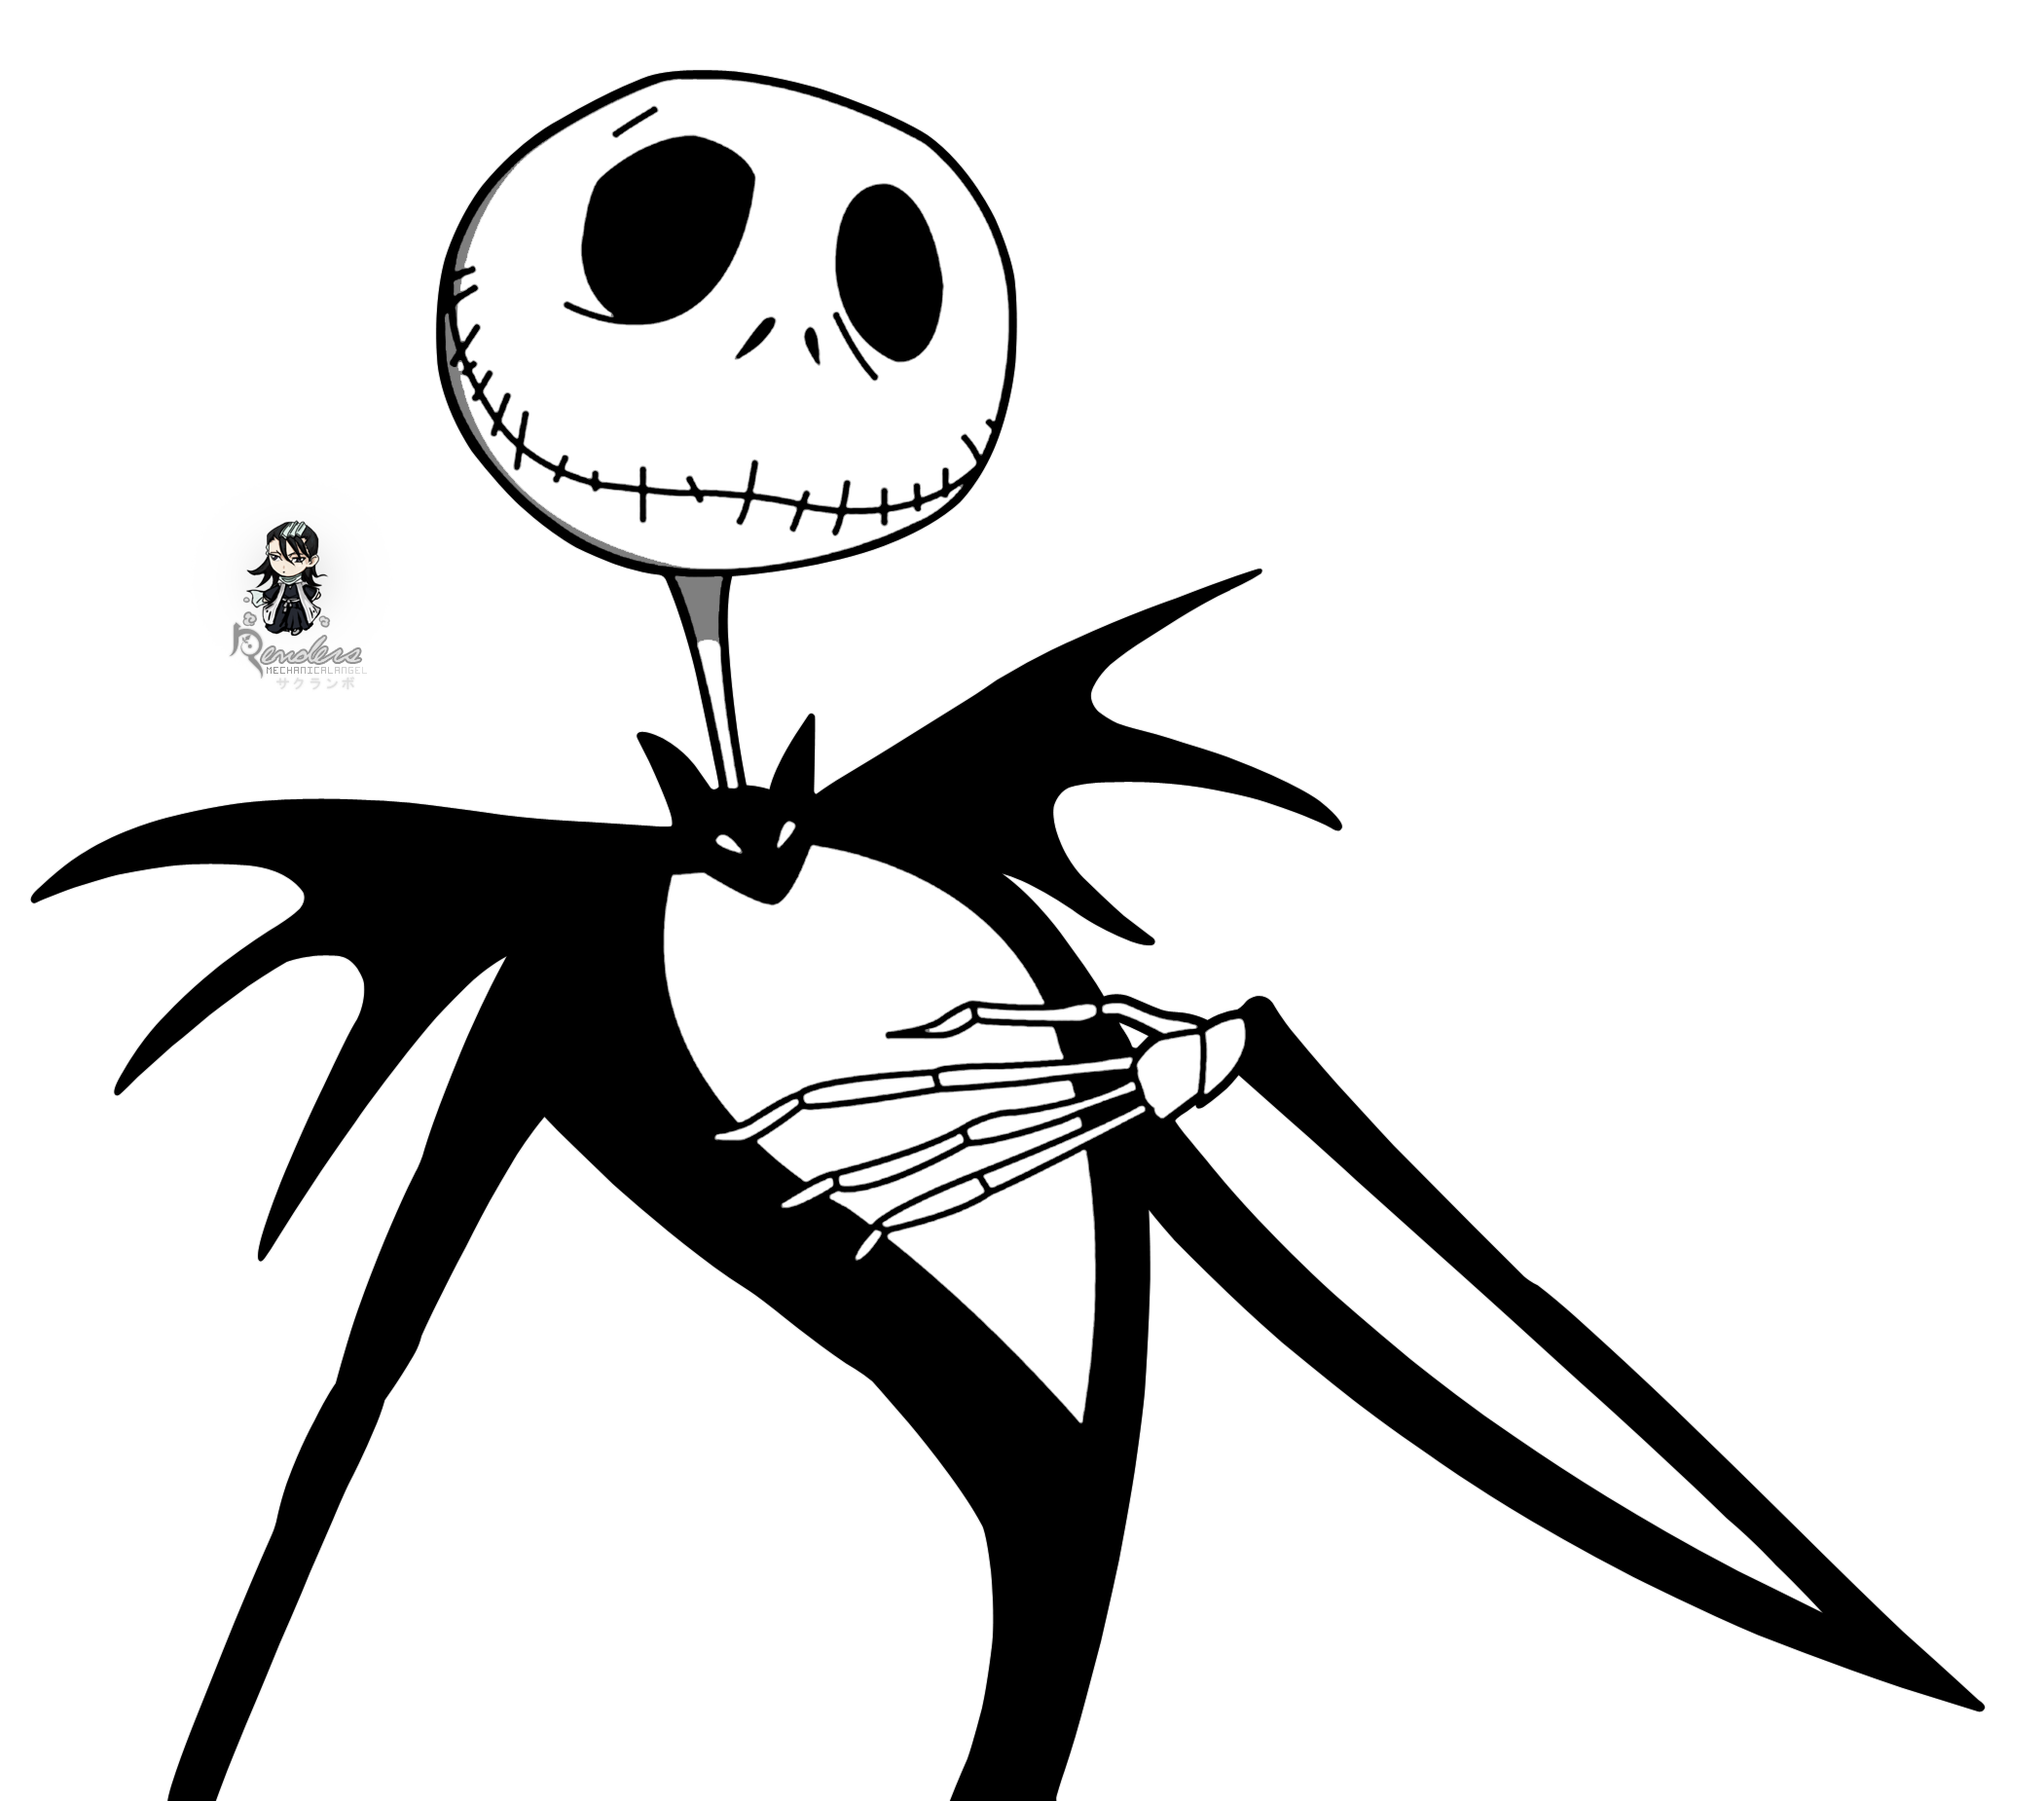 Nightmare before christmas clipart black and white svg black and white stock Nightmare Before Christmas Silhouette | Render the nightmare before ... svg black and white stock